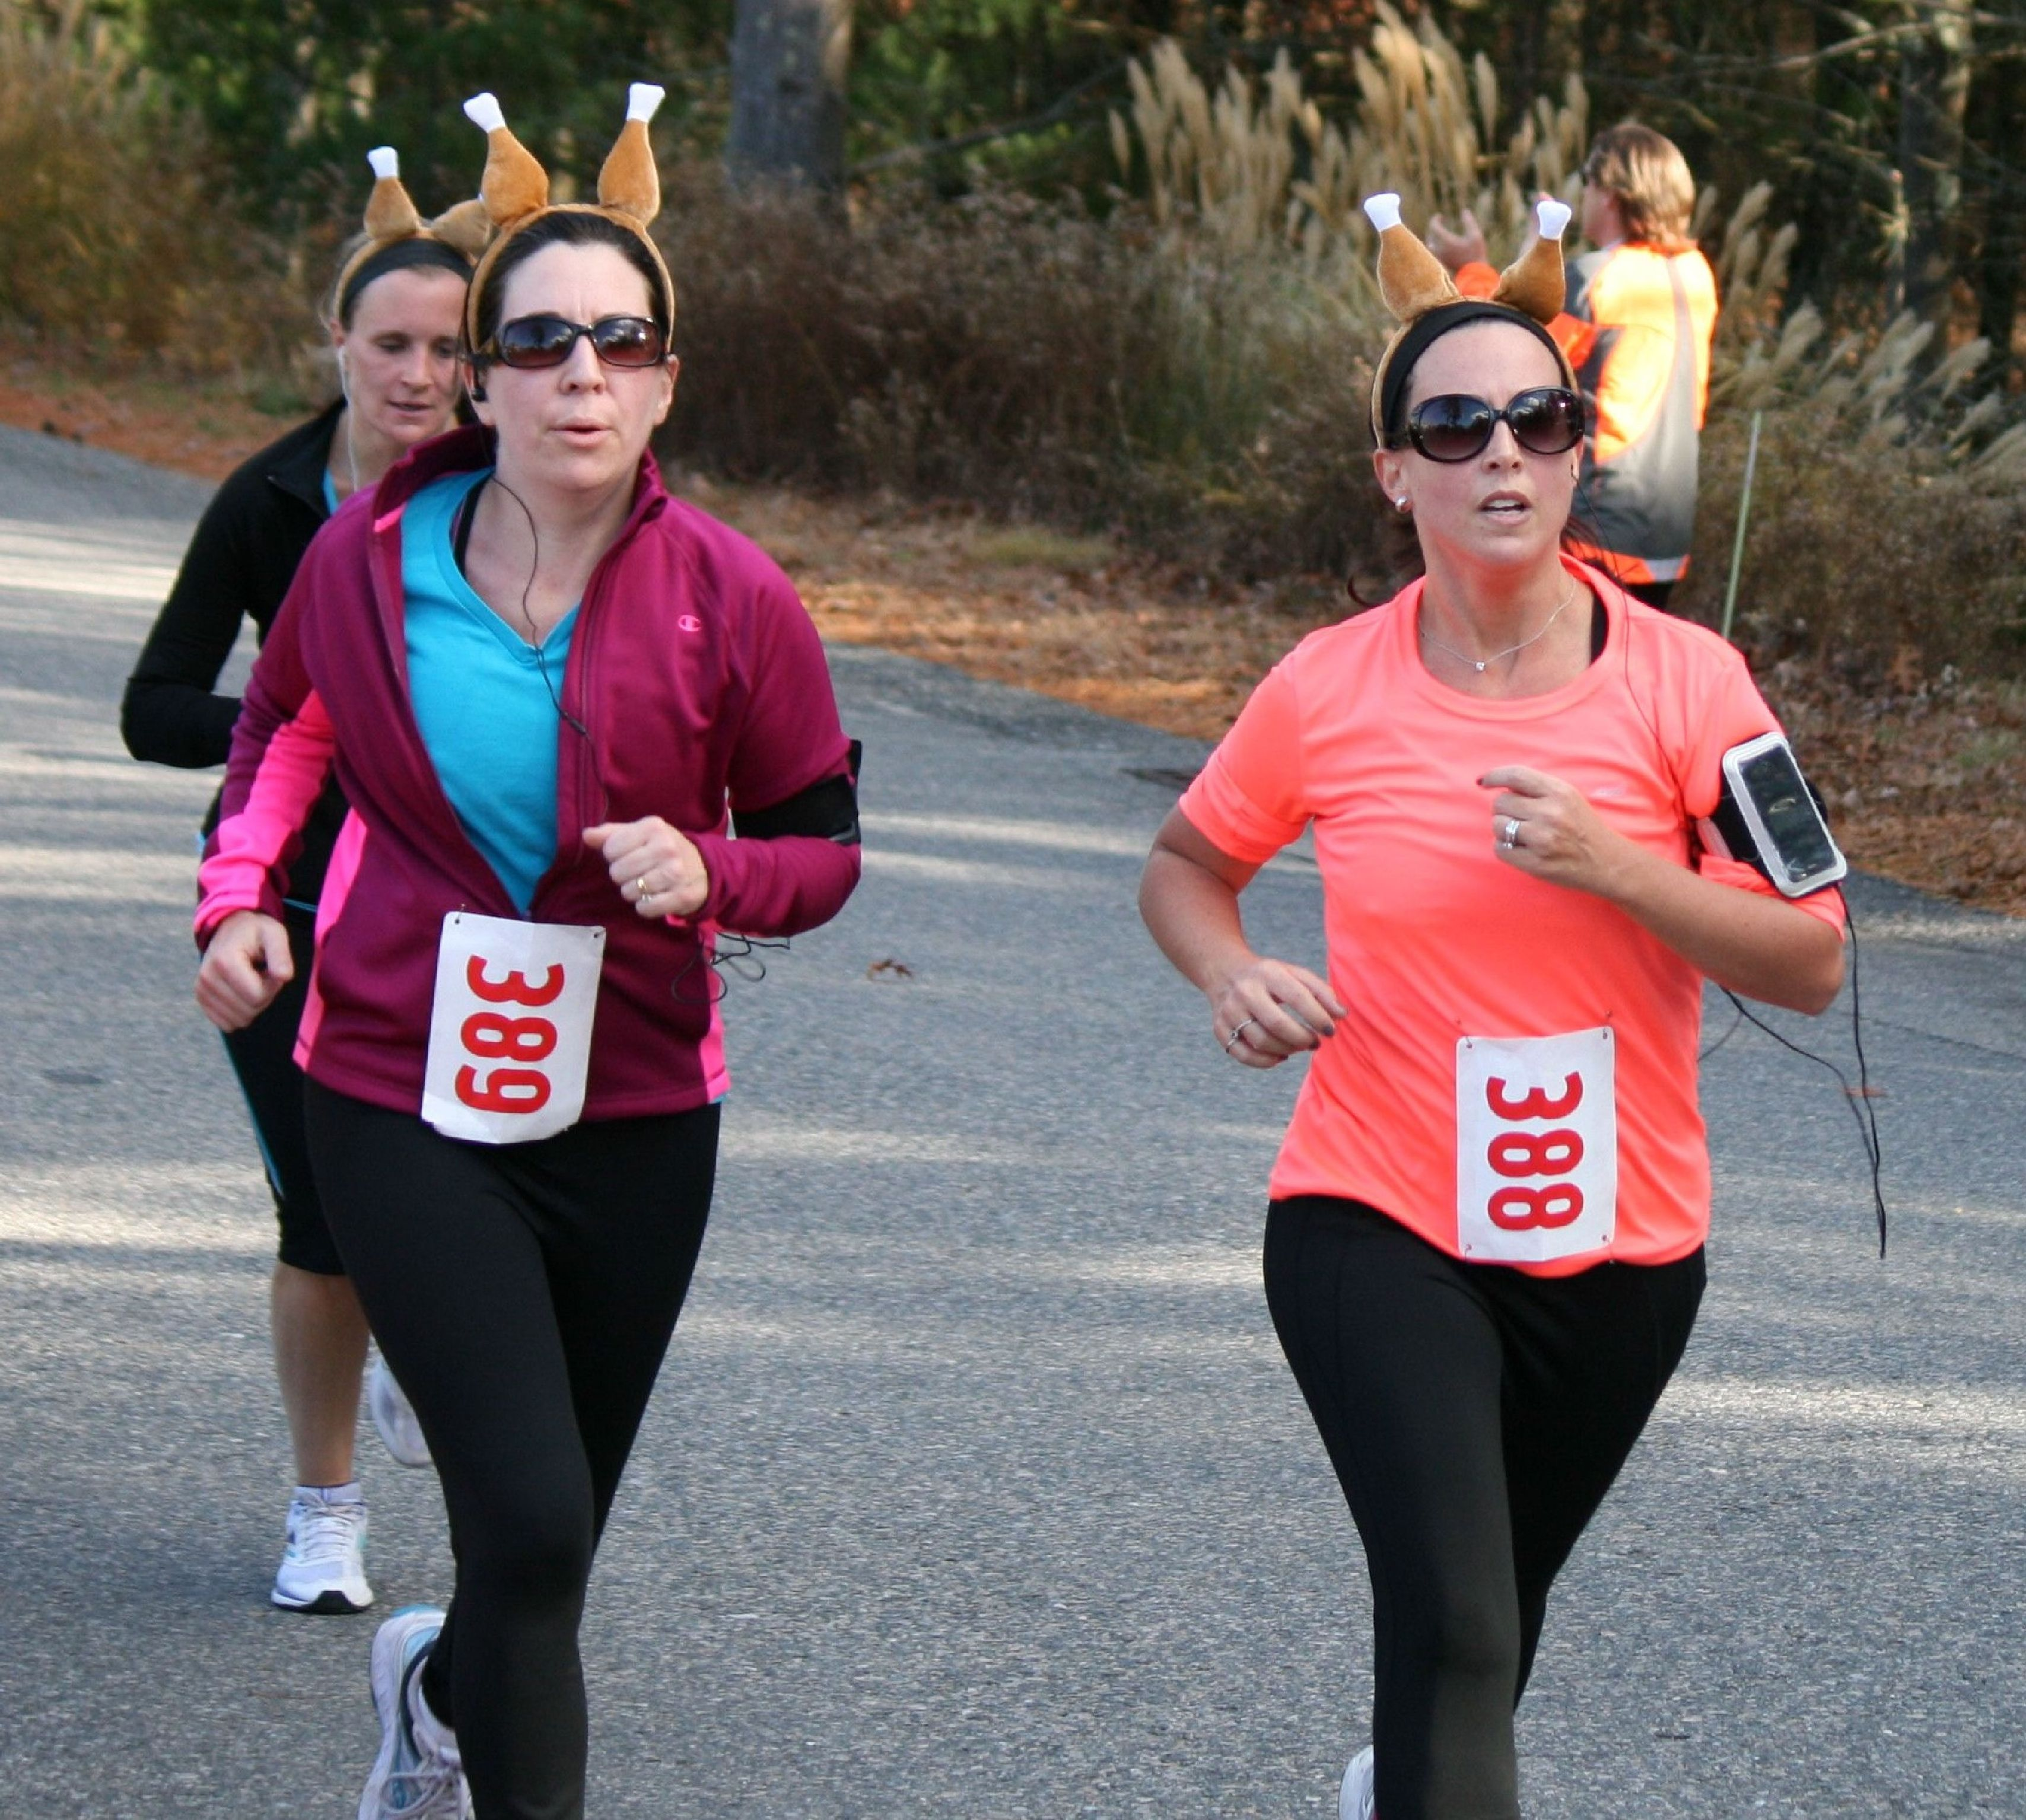 High five to Plymouth Rock Racing. Plymouth Rock Racing's Thanksgiving Day runs– Pilgrim Trot 5K, Plymouth Turkey Trot, Plymouth Turkey Trot Second Helping Challenge—make Men's Journal's top five